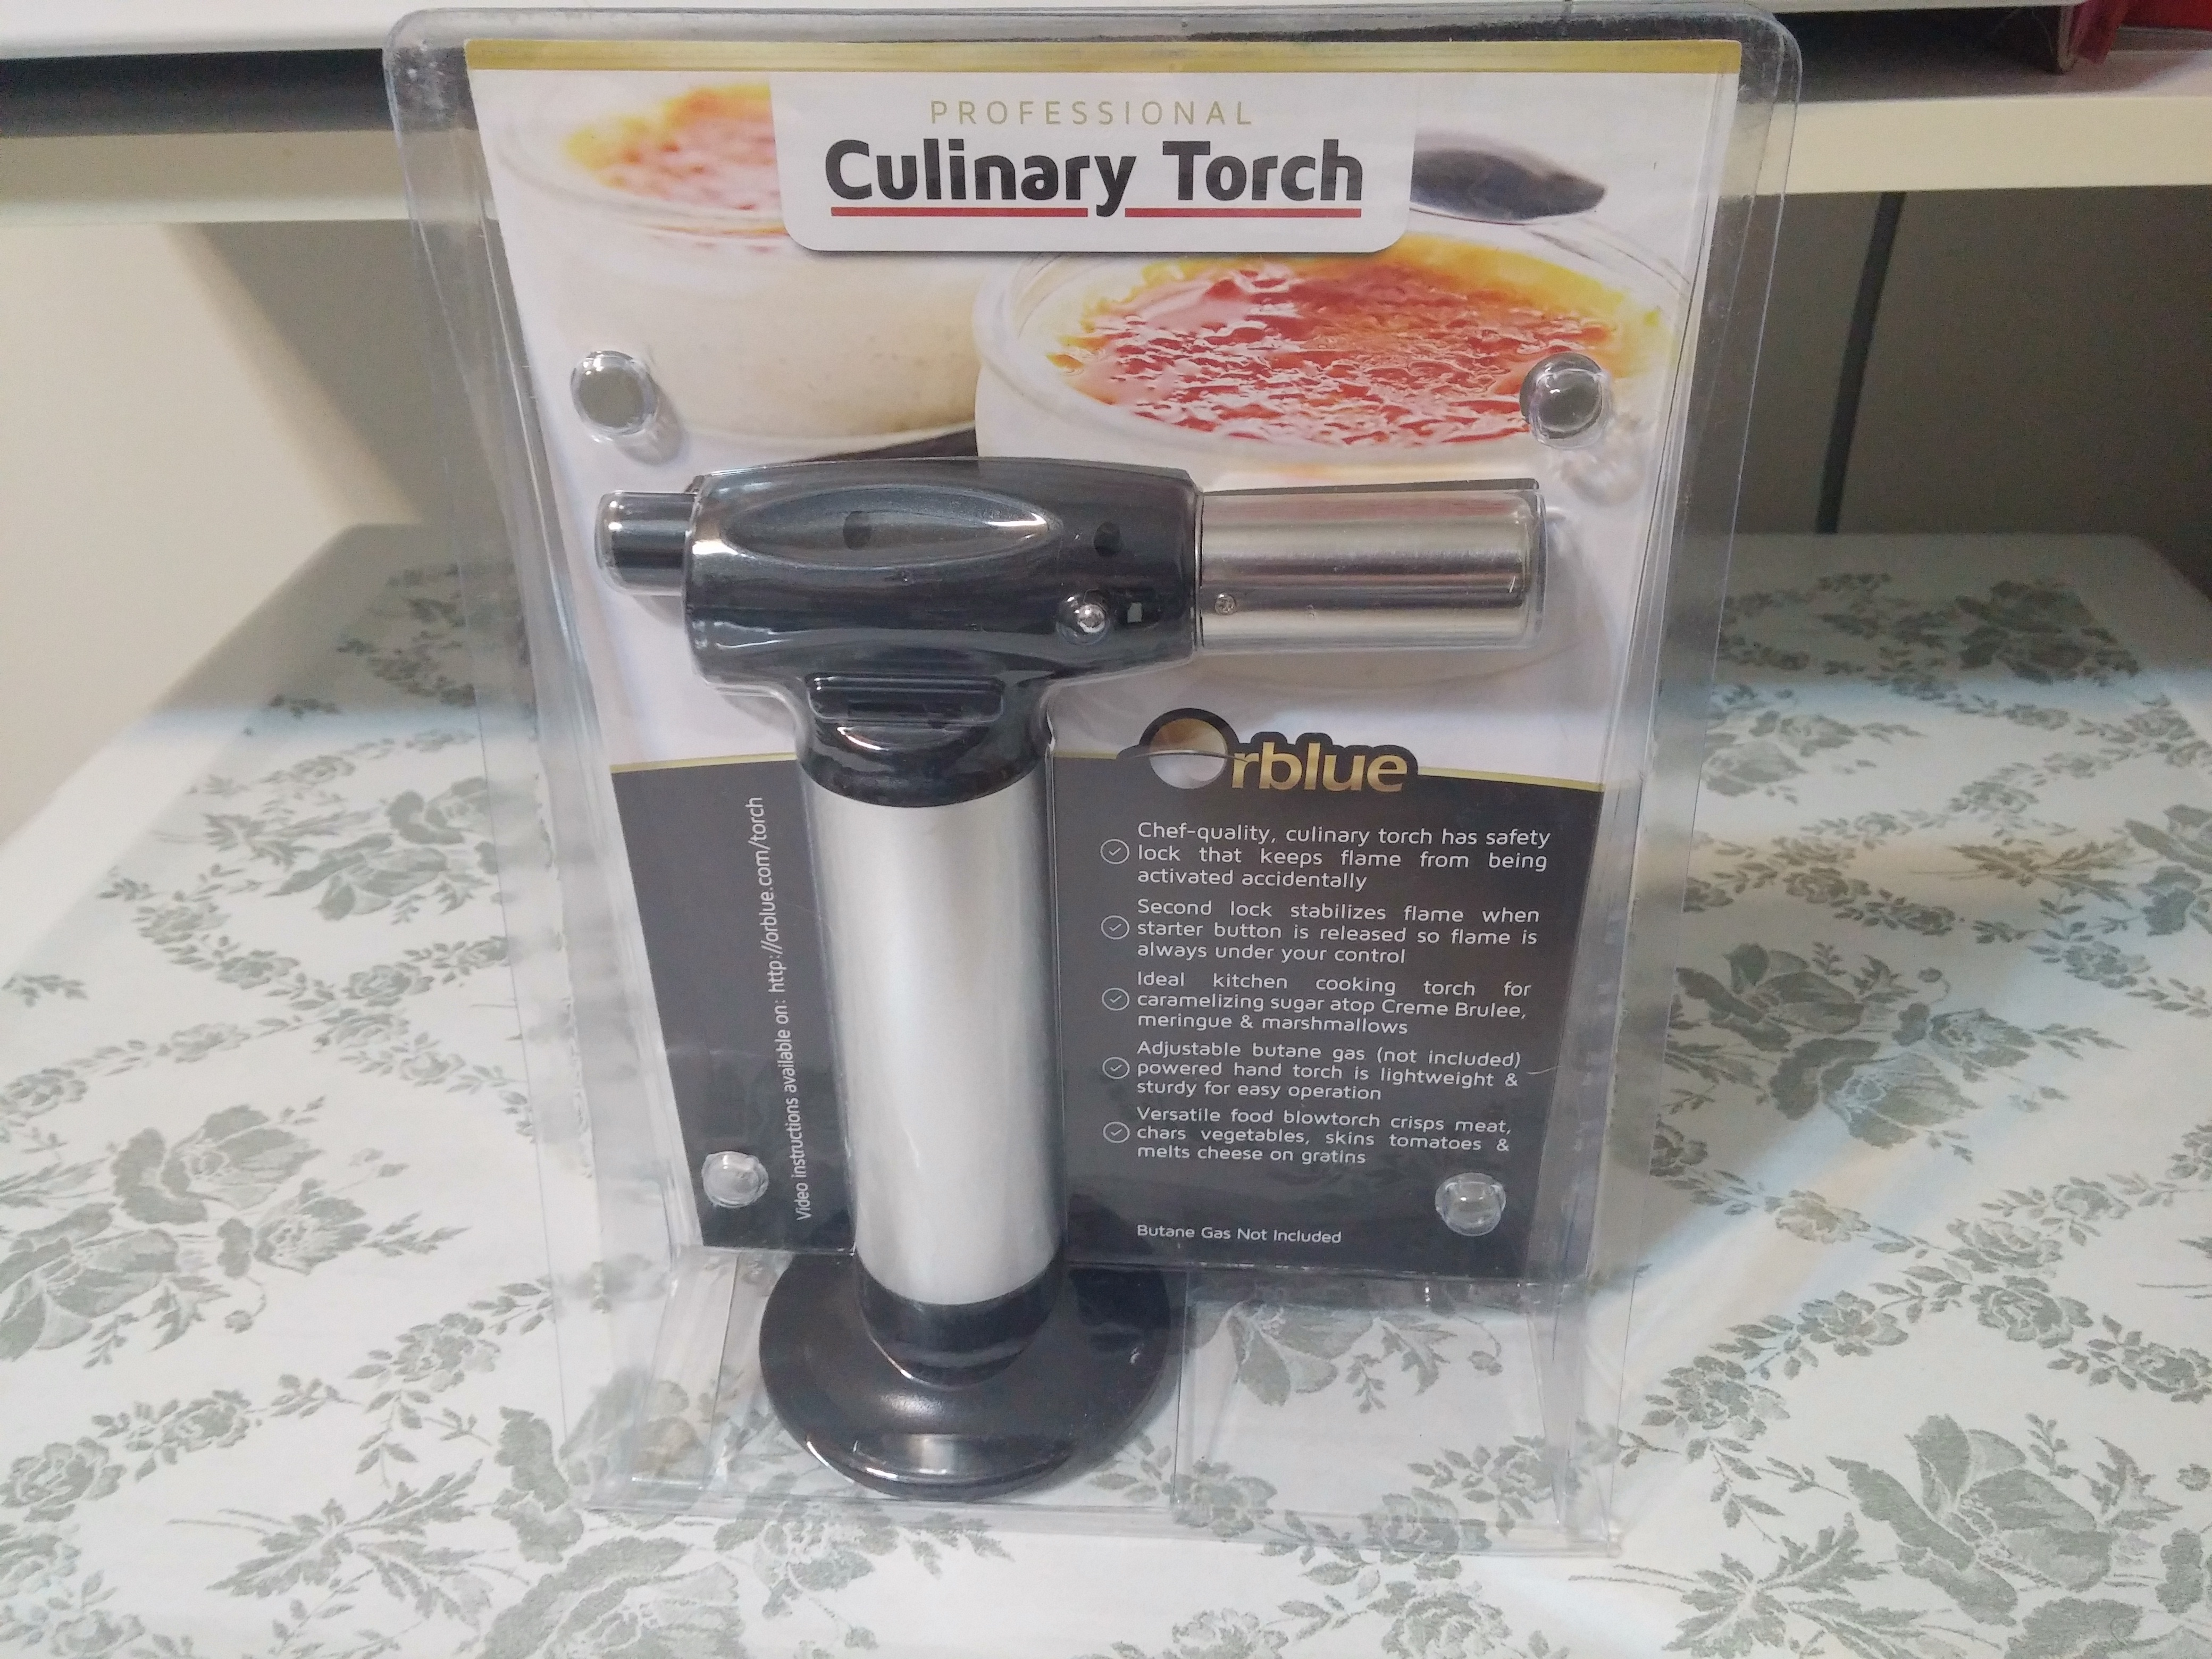 Kitchen Collection Creme Brulee Torch Review